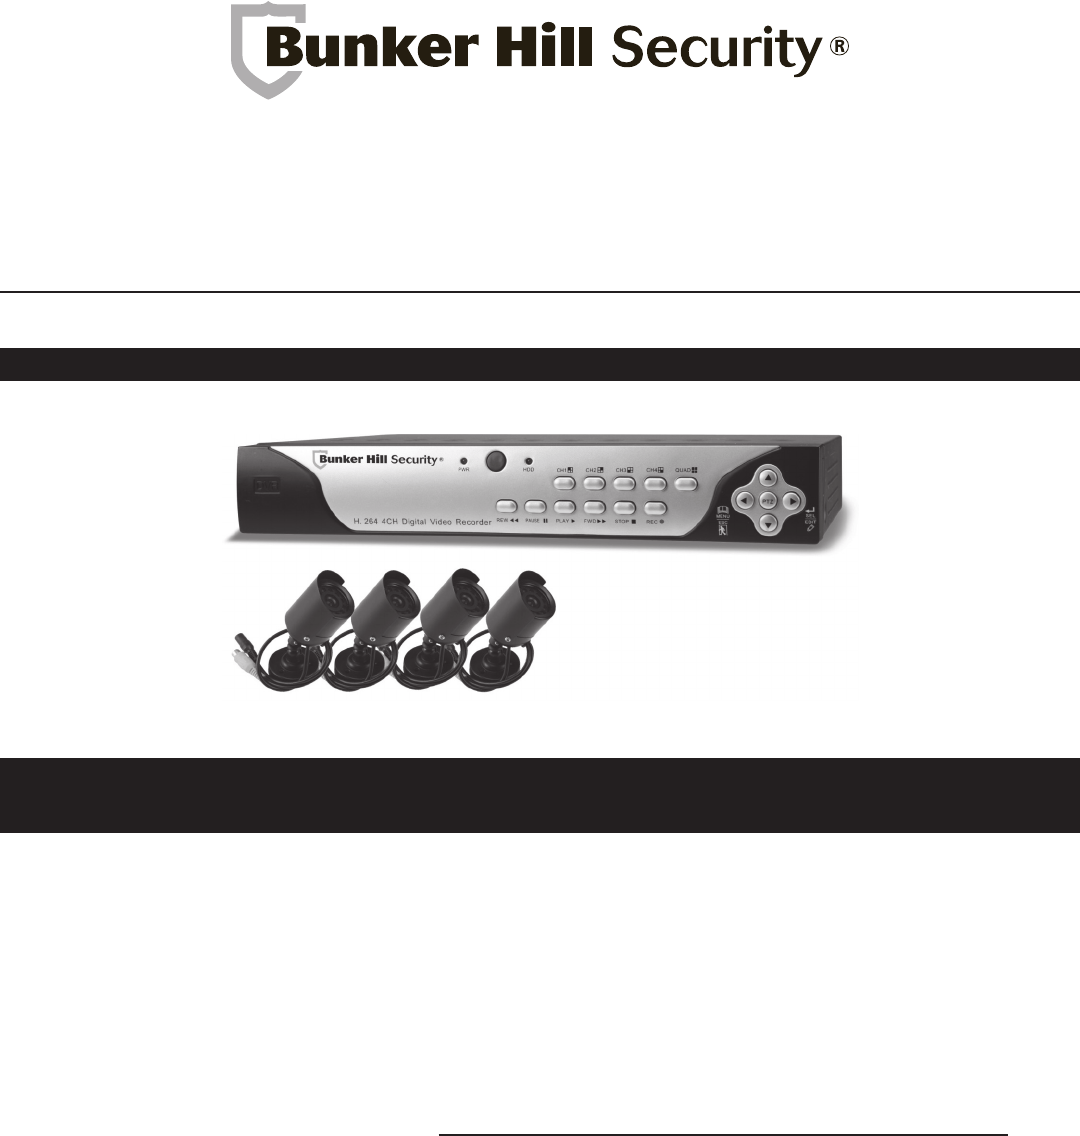 harbor freight security camera wiring diagram 1992 toyota mr2 radio bunker hill 91851 48